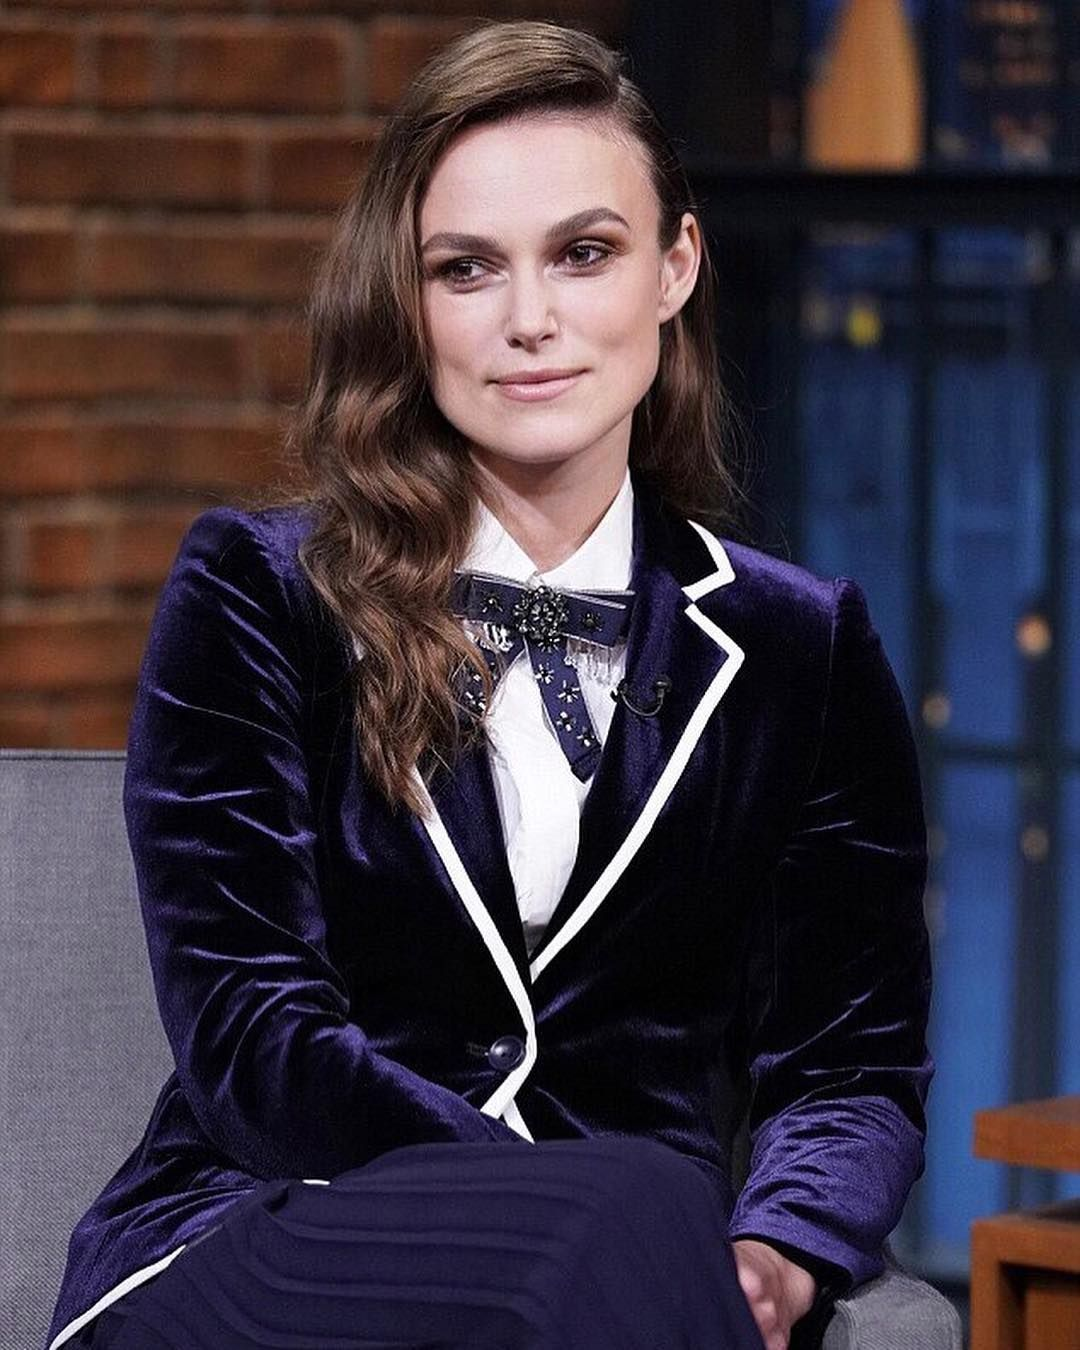 Kiera Knightley And Her World Of Beauty